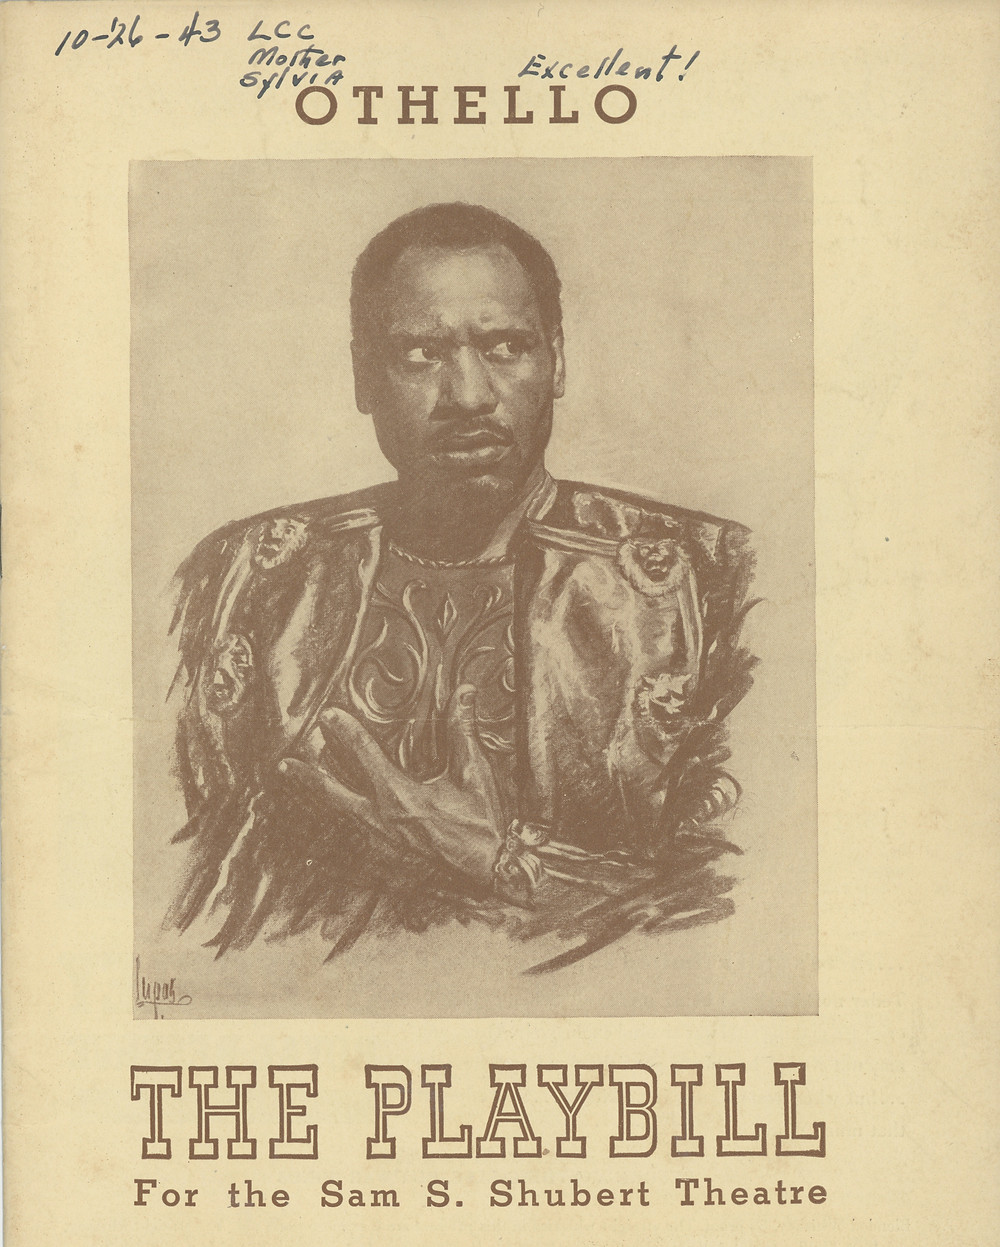 """A program from a performance of """"Othello"""" featuring Paul Robeson, that Cartwright attended with her husband in 1943. She proclaimed it """"Excellent!"""""""